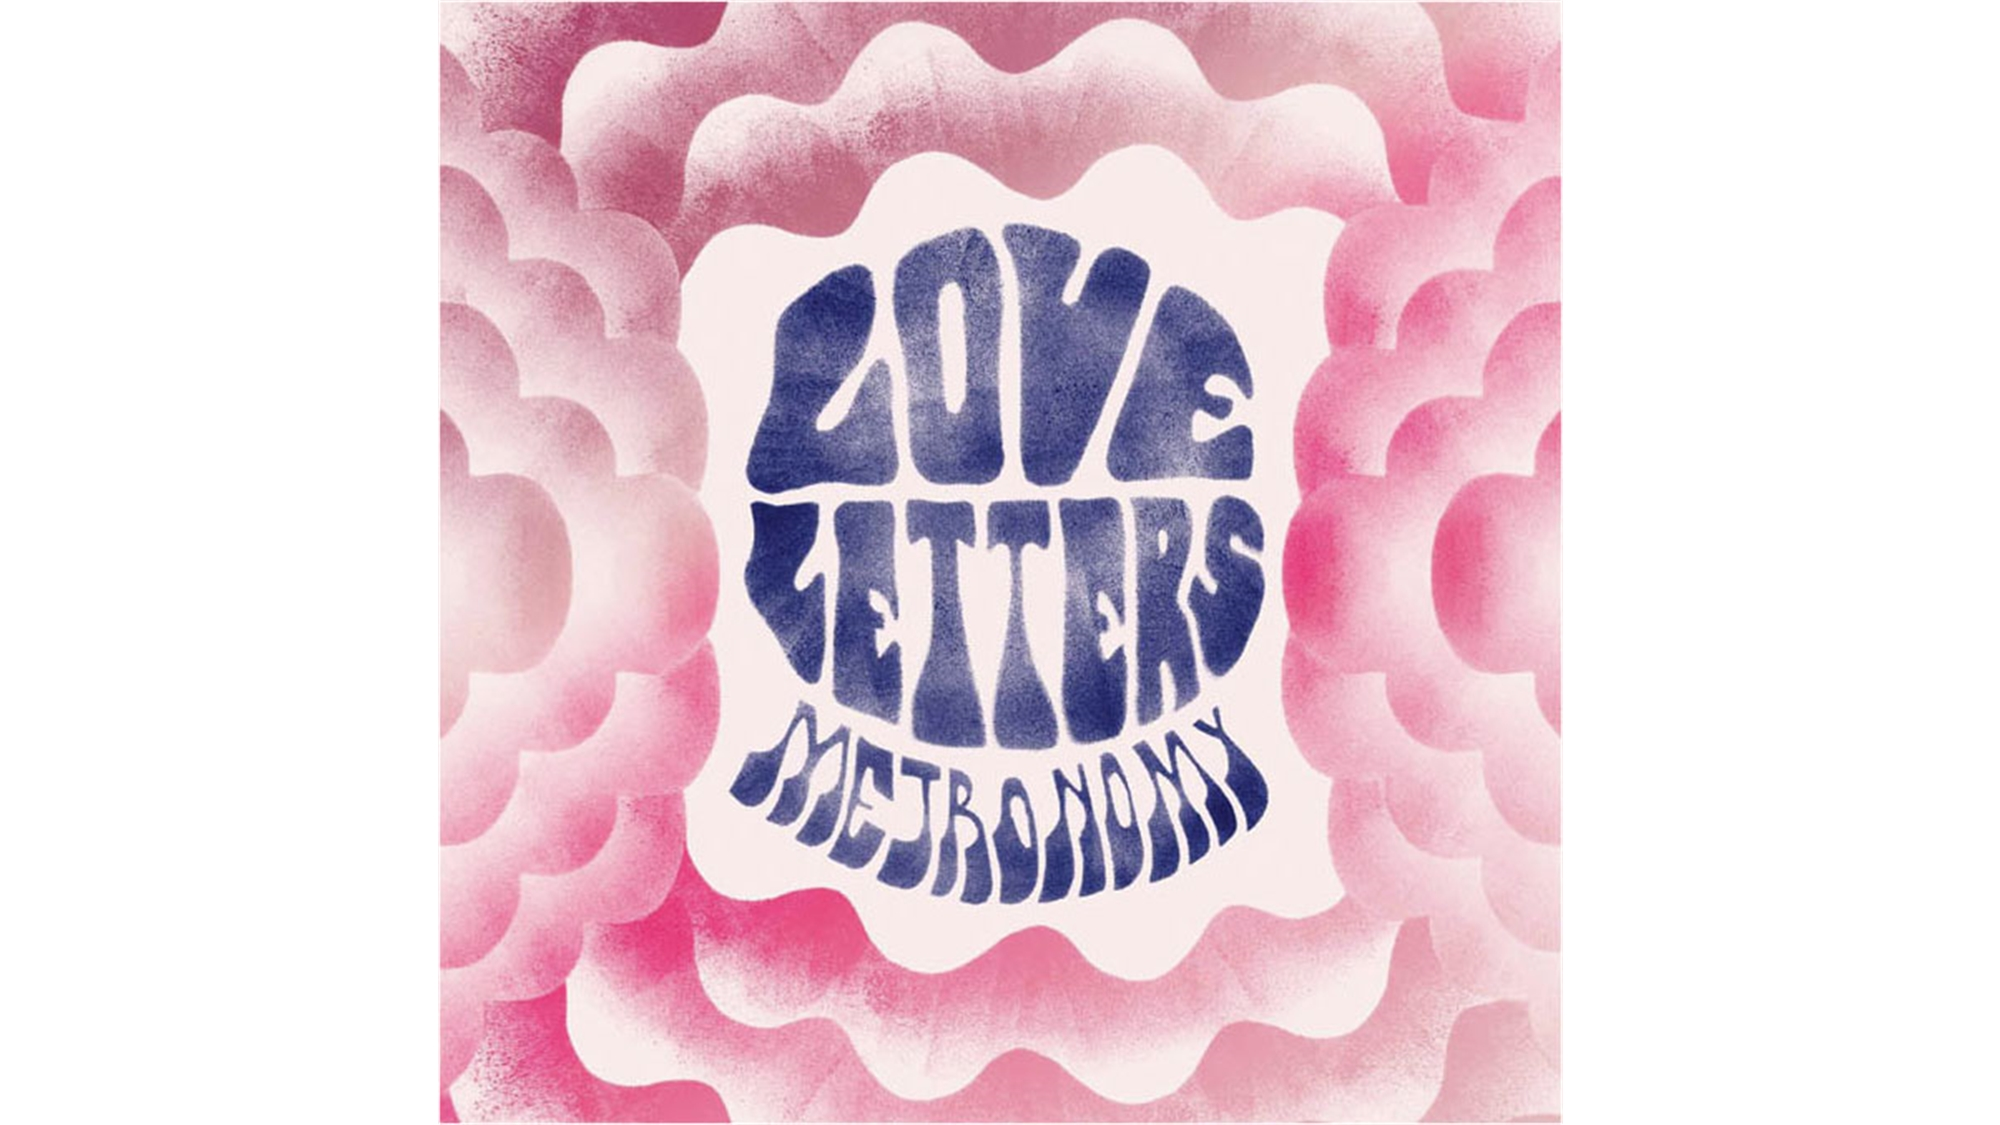 Metronomy Love Letters Review